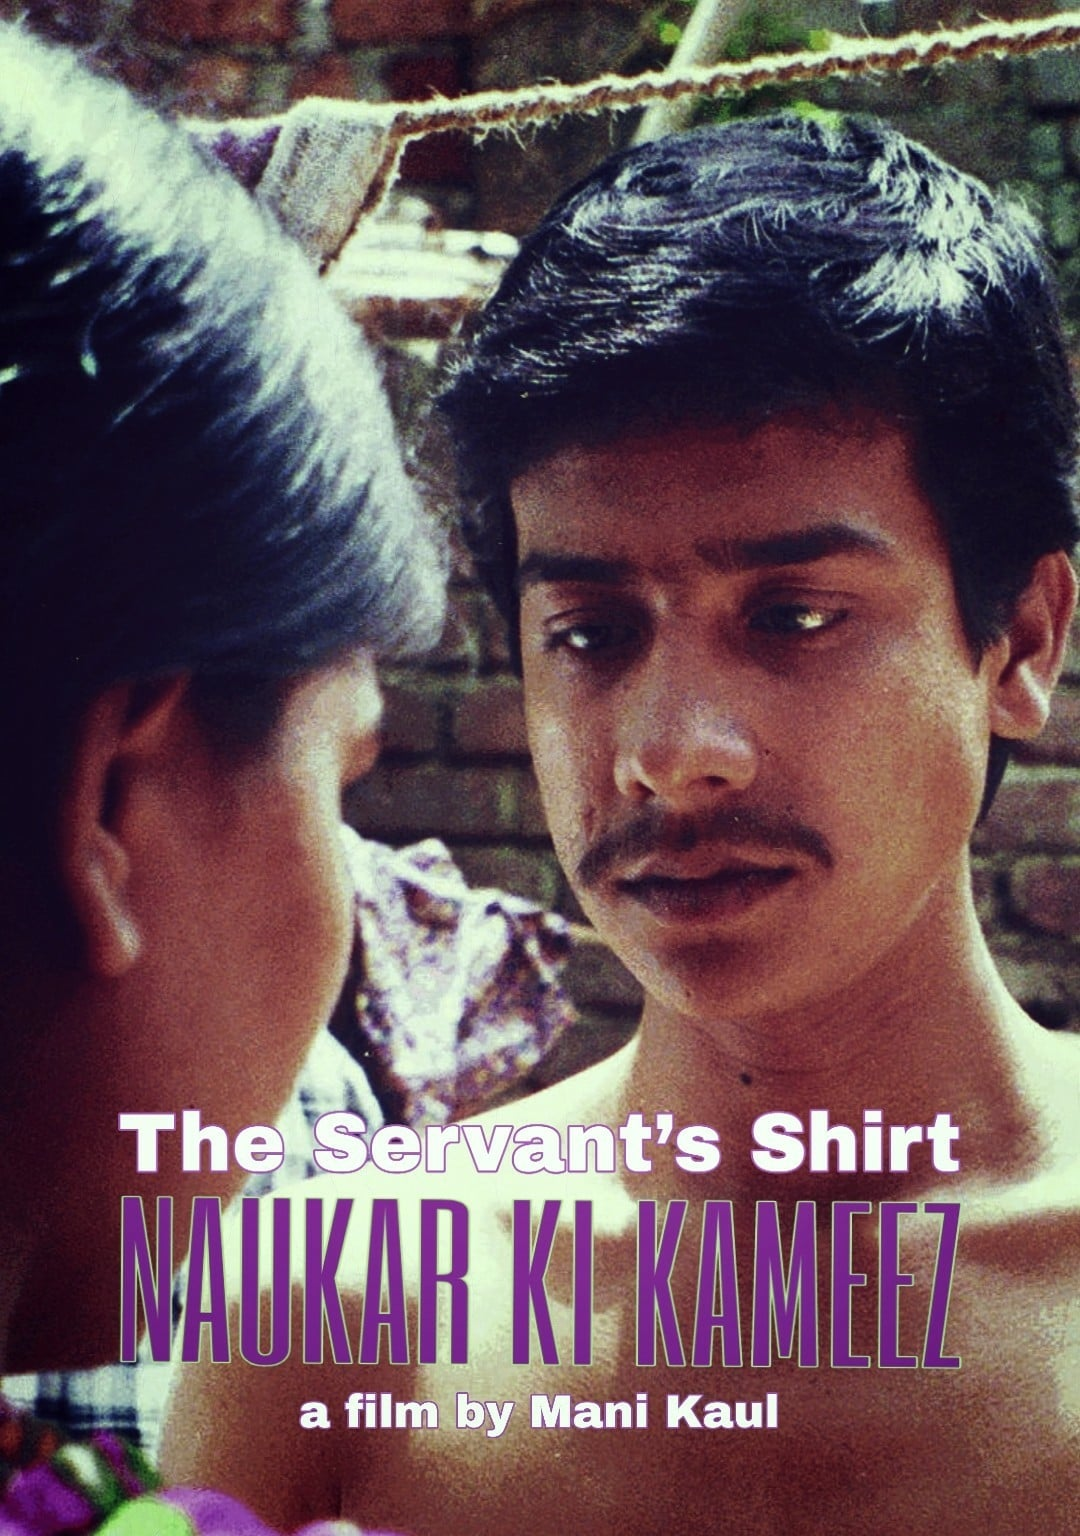 The Servant's Shirt (1999)